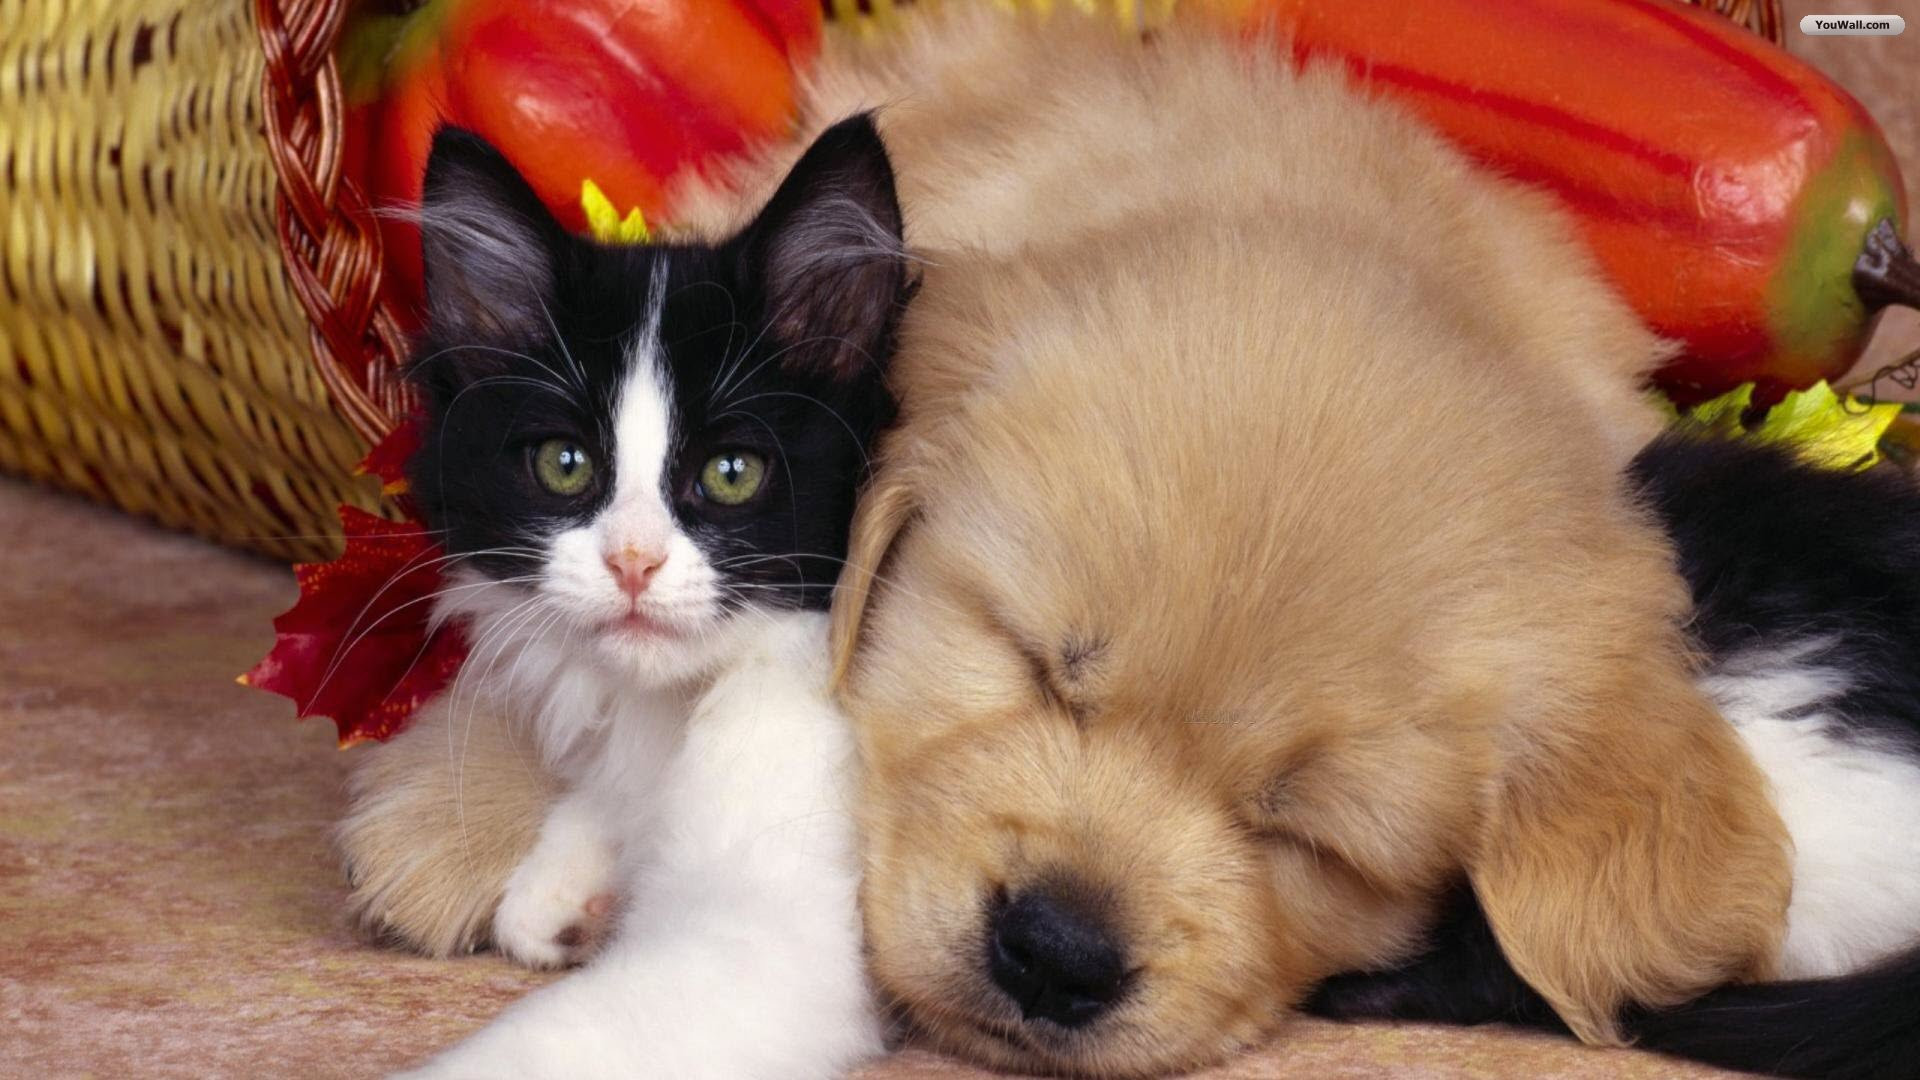 … Wallpaper Of Cute Dogs And Cats Cute Dog And Cat Wallpaper | Pixelstalk  …